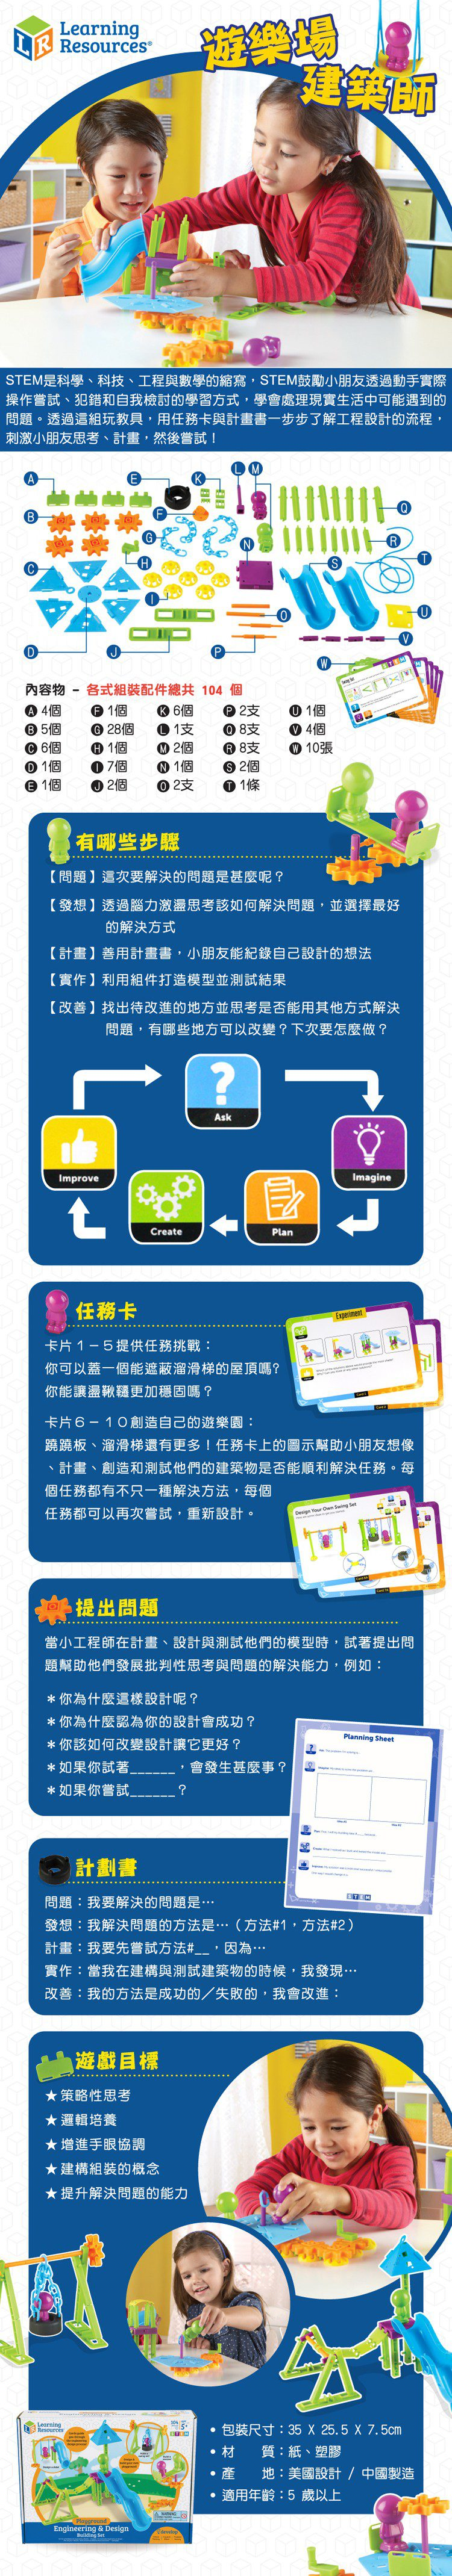 learning resources 玩具 桌遊 玩具 learning resources 玩具 美國